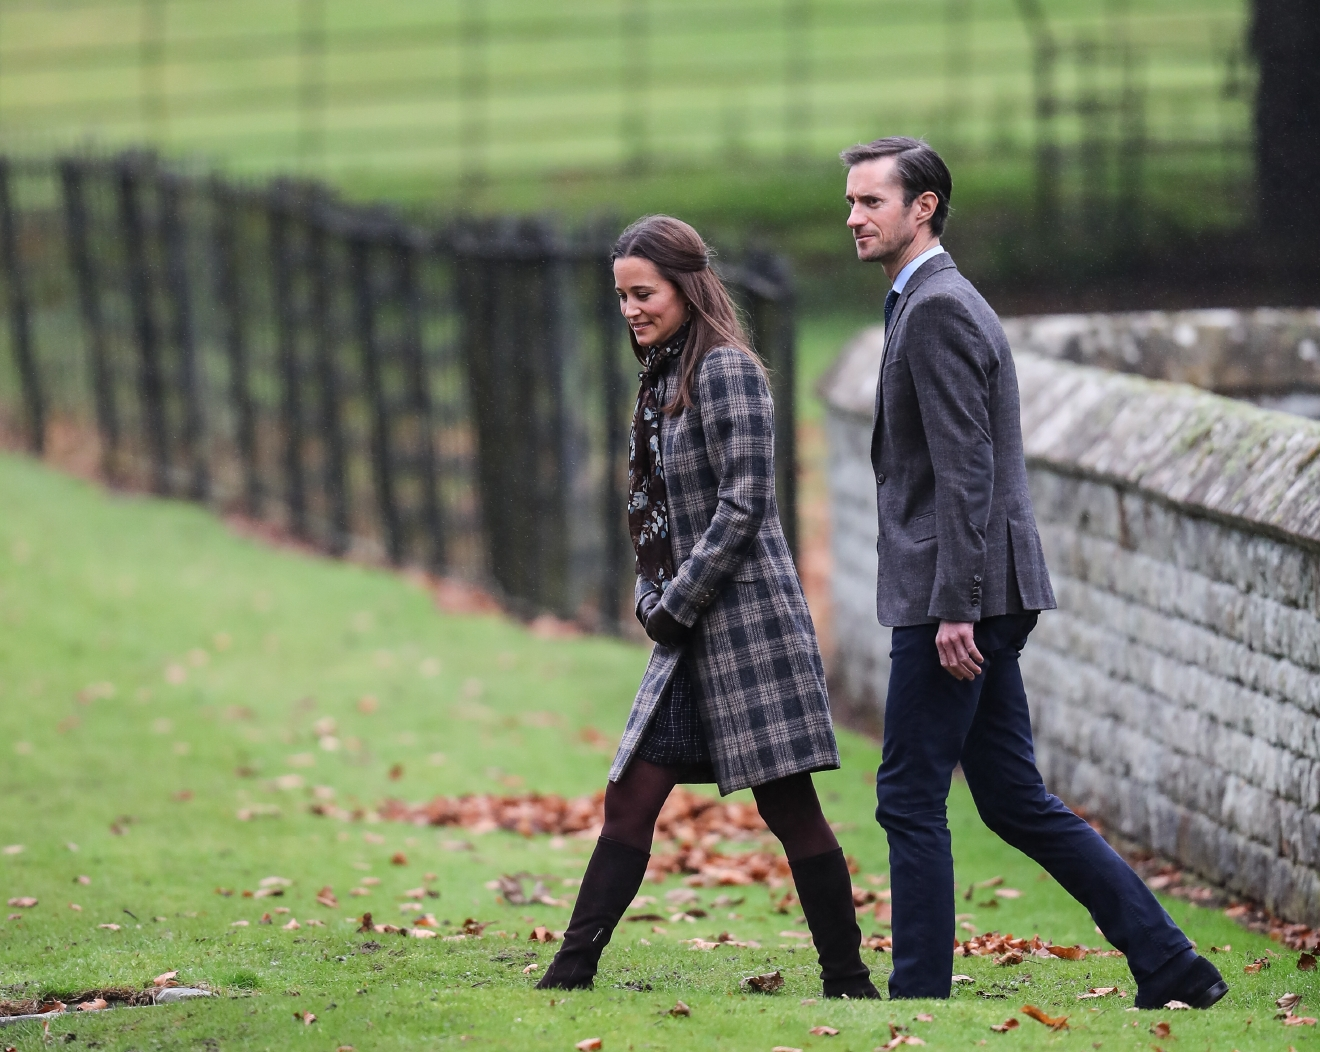 The Duke and Duchess of Cambridge arrive at St Marks Englefield with Prince George and Princess Charlotte. The family were also accompanied by Michael and Carol Middleton, James Middleton, Pippa Middleton and her fiance James Matthews.  Featuring: Pippa Middleton, James Matthews Where: Englfield, United Kingdom When: 25 Dec 2016 Credit: WENN.com